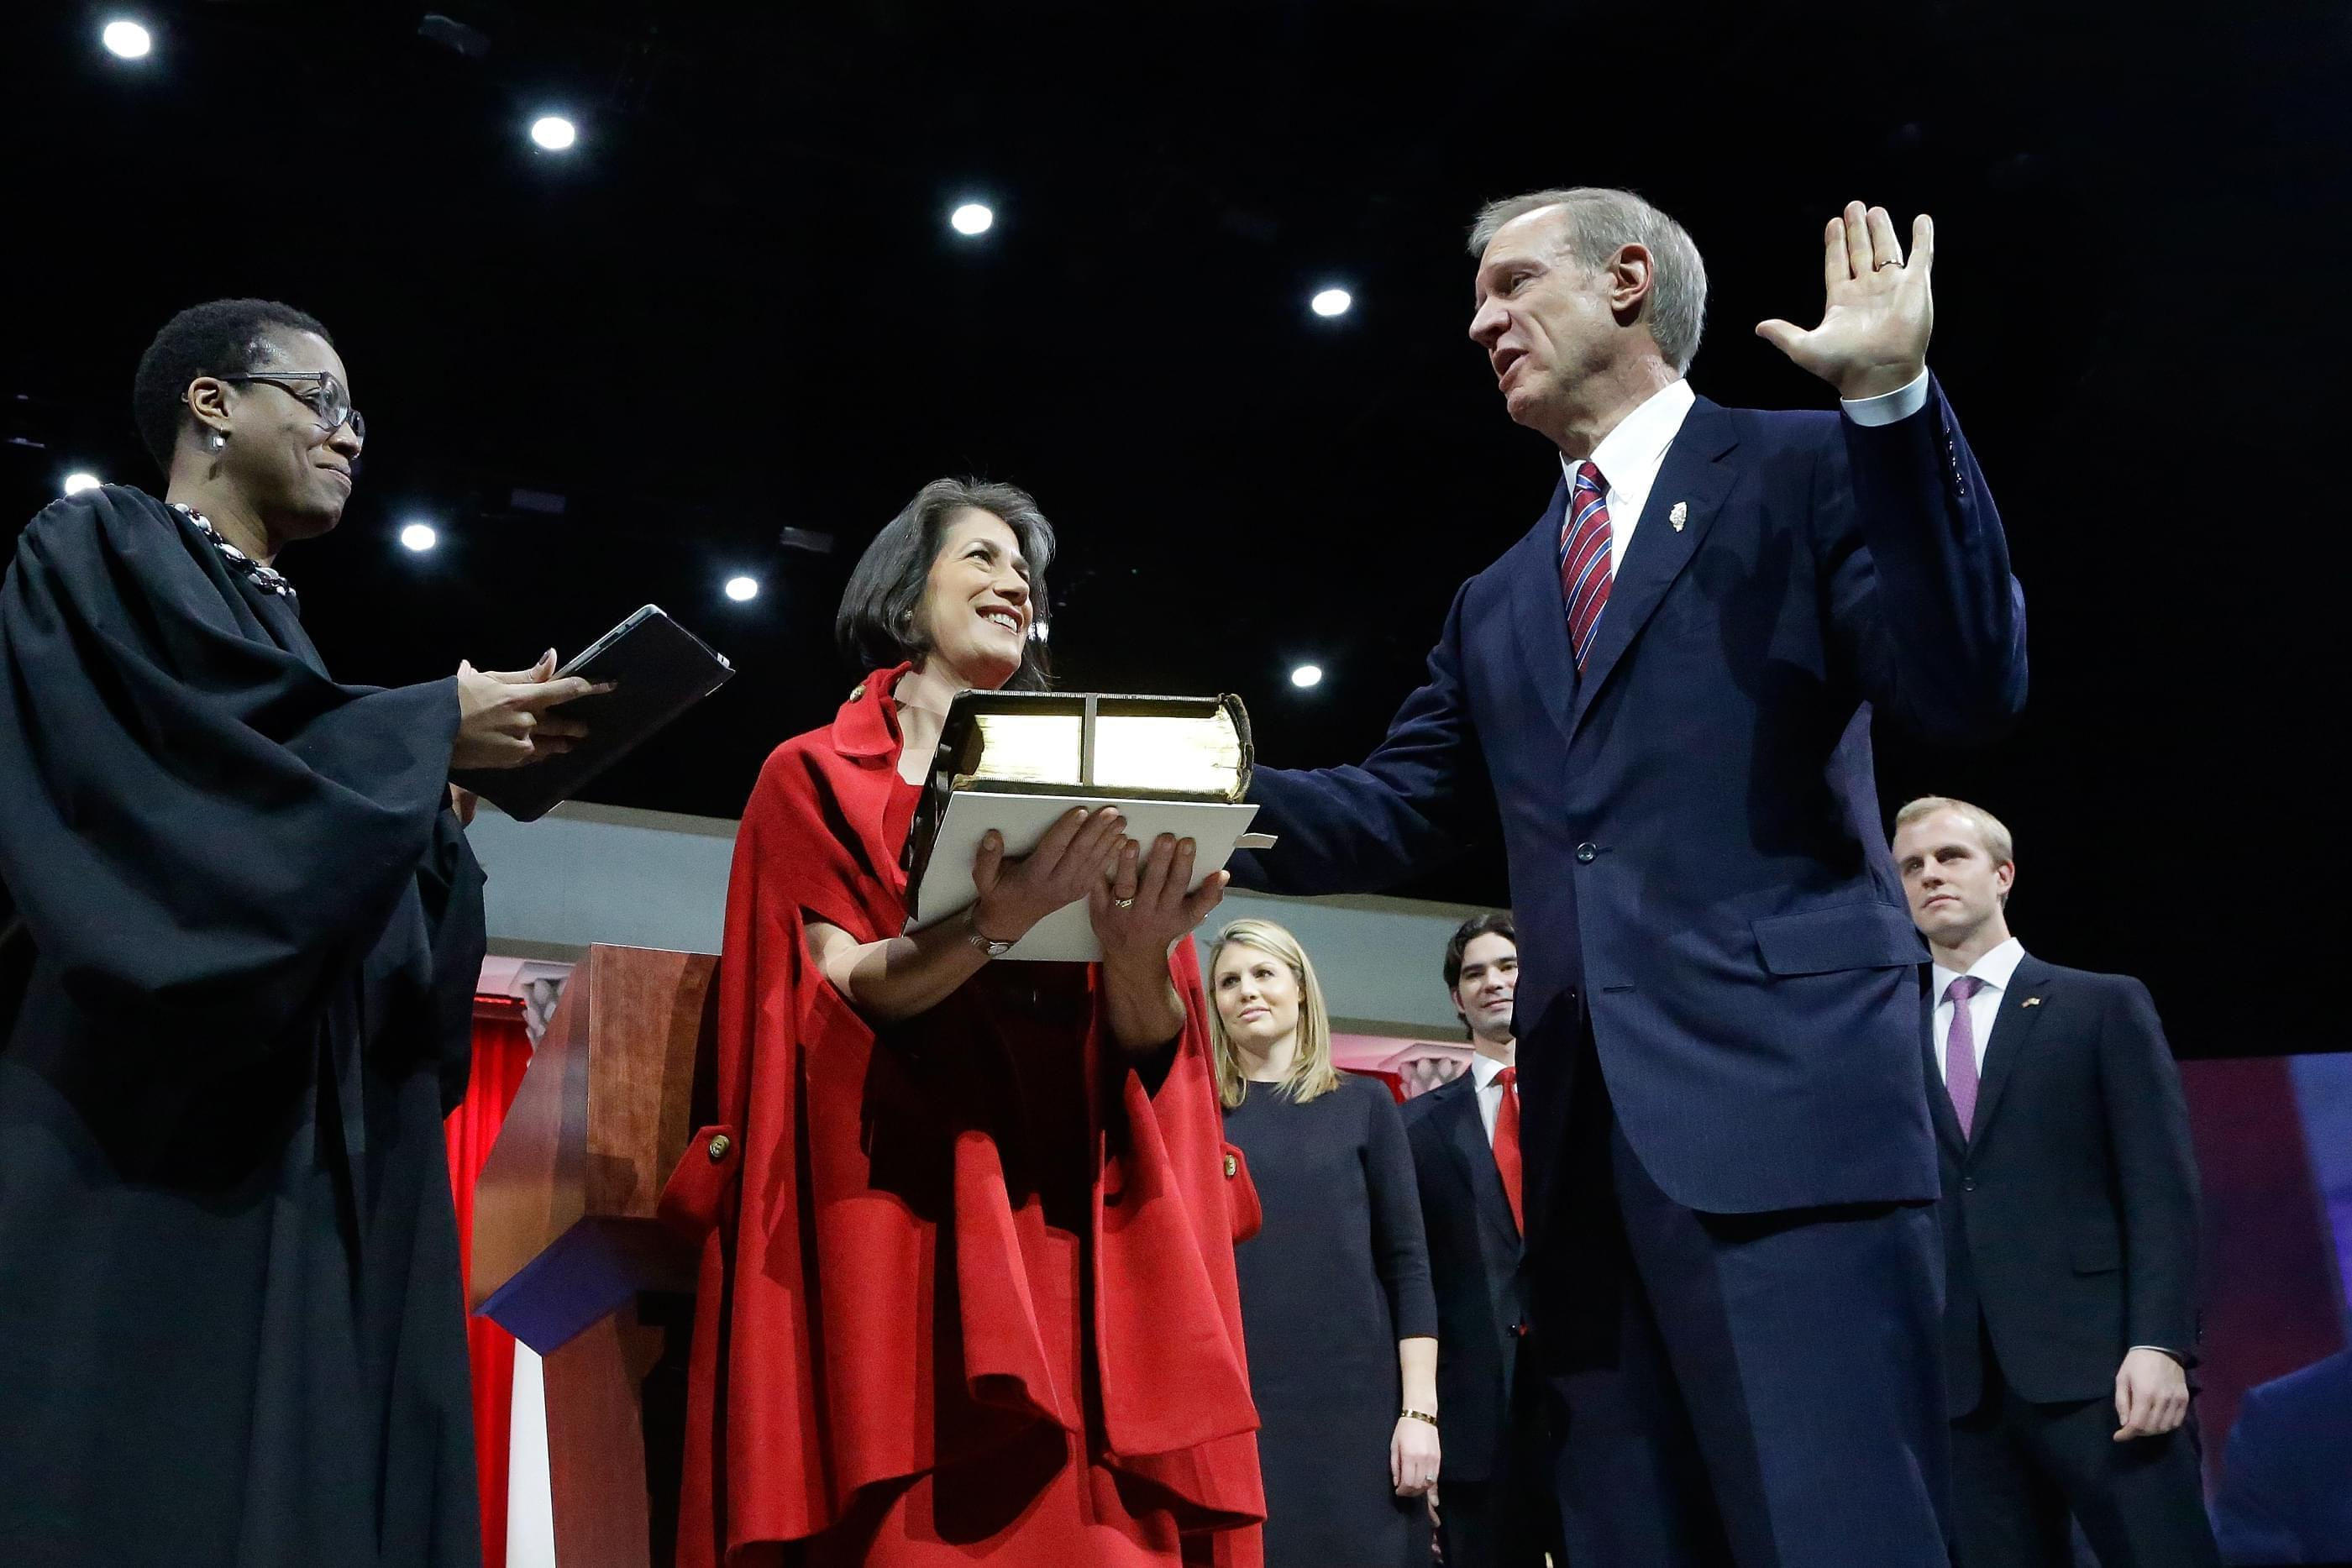 Bruce Rauner takes the oath of office as Illinois' 42nd governor.